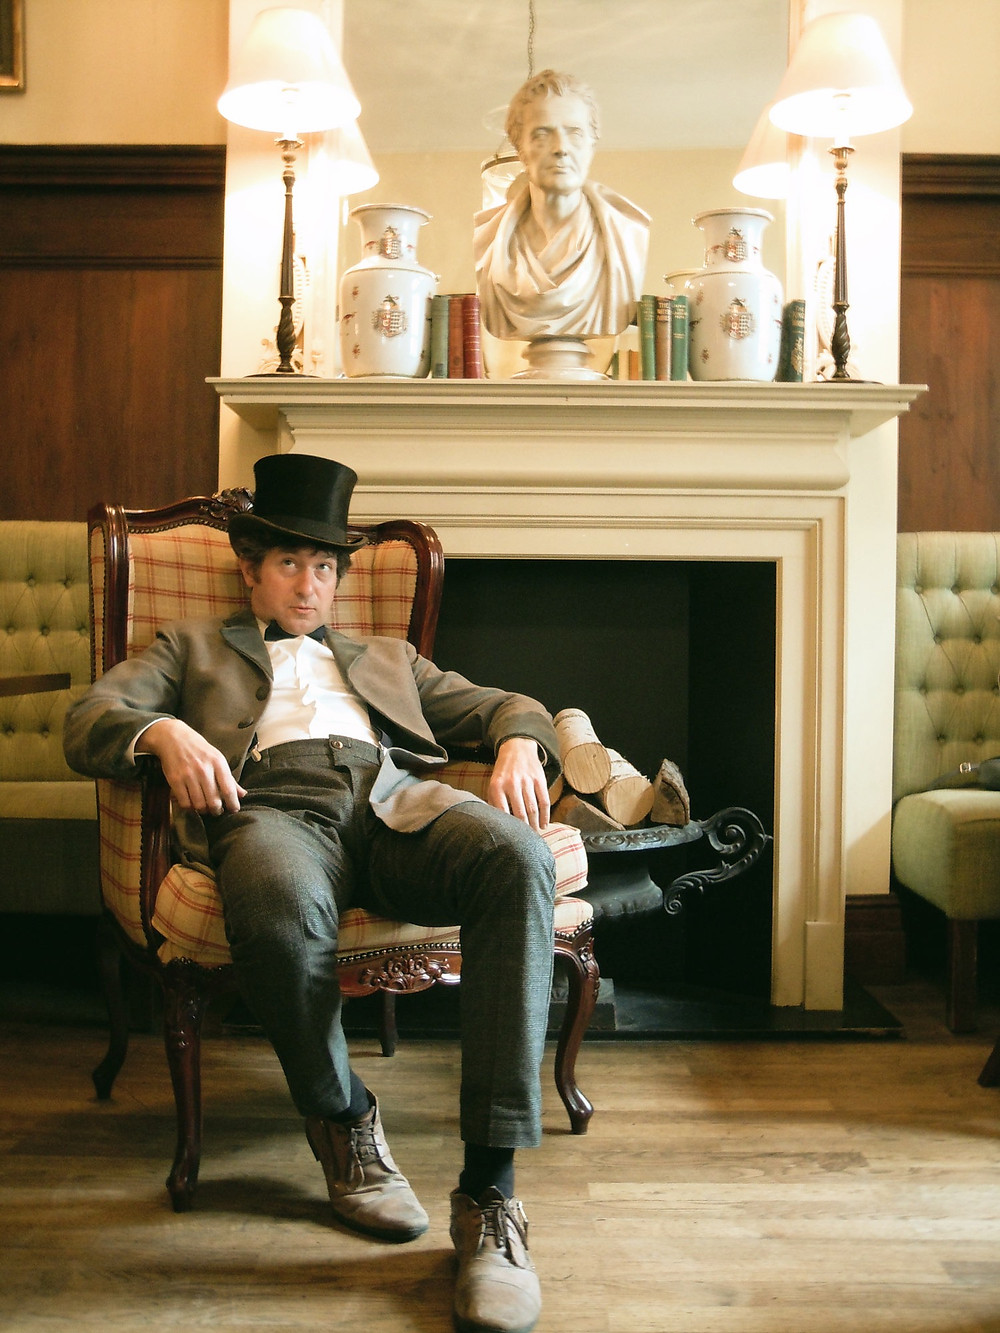 Ian Chapman in top hat and dinner attire slouching in chair deep in thought